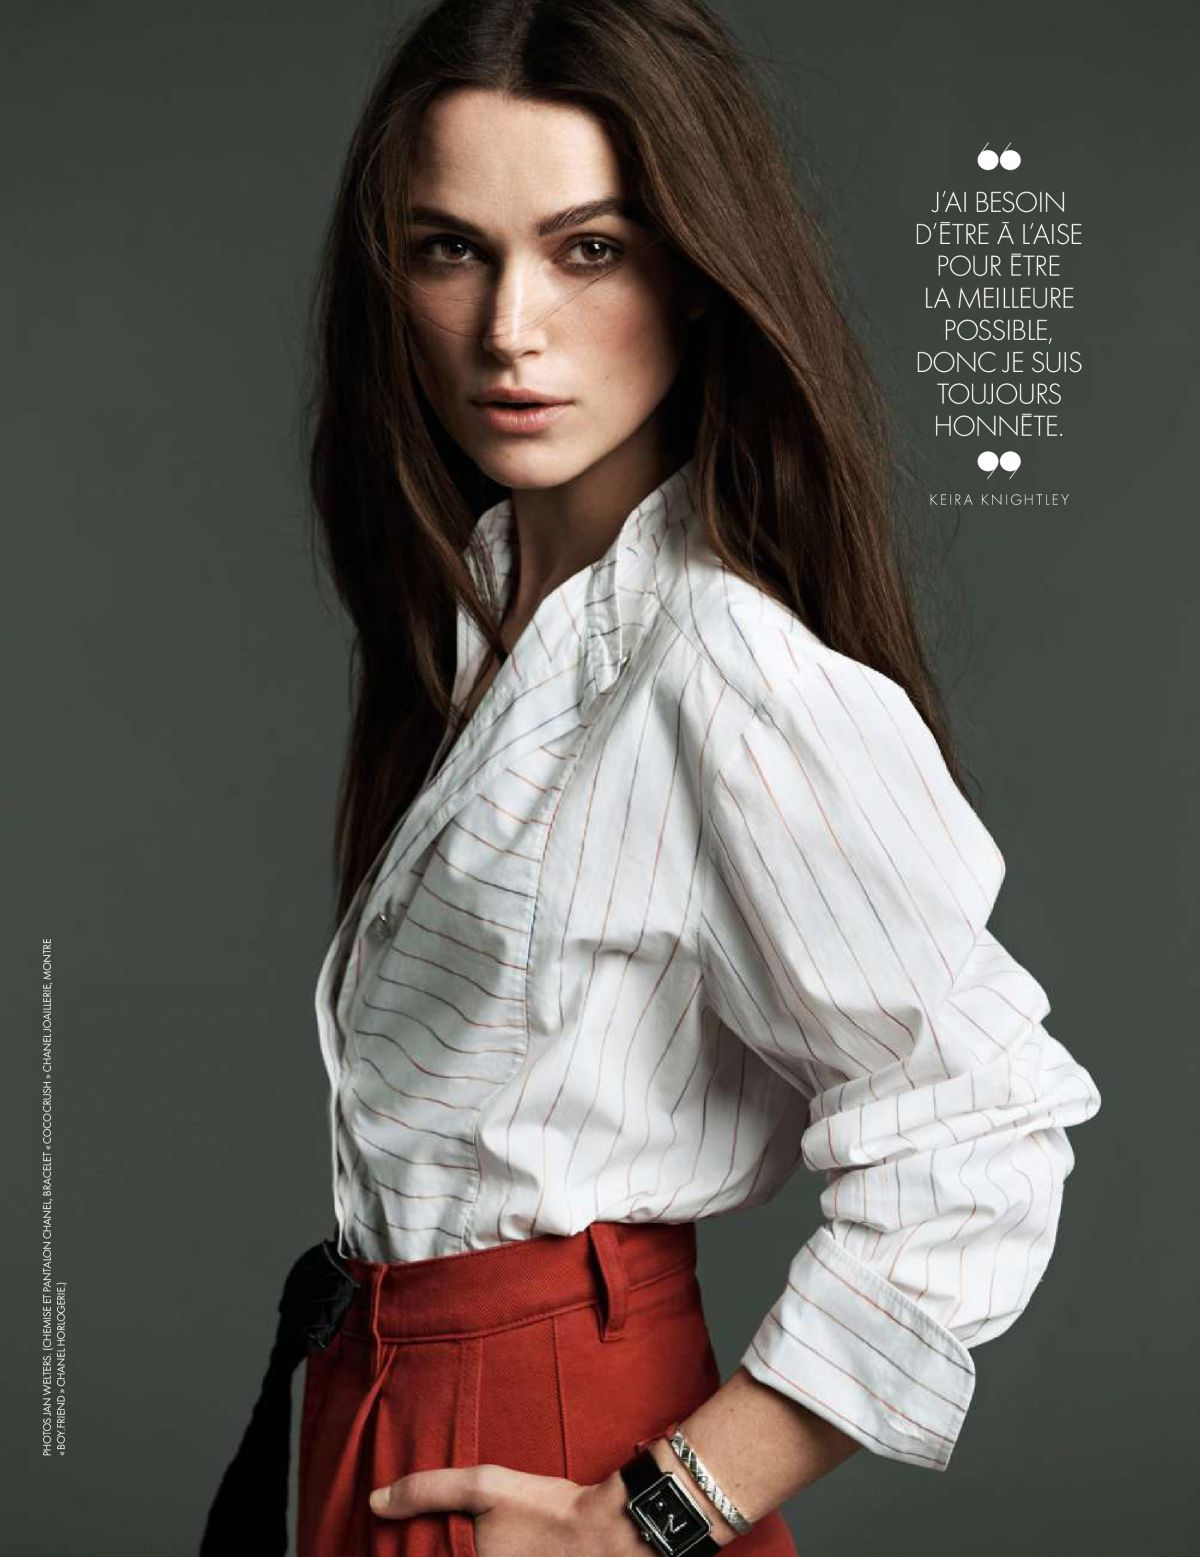 Keira Knightley photo ...